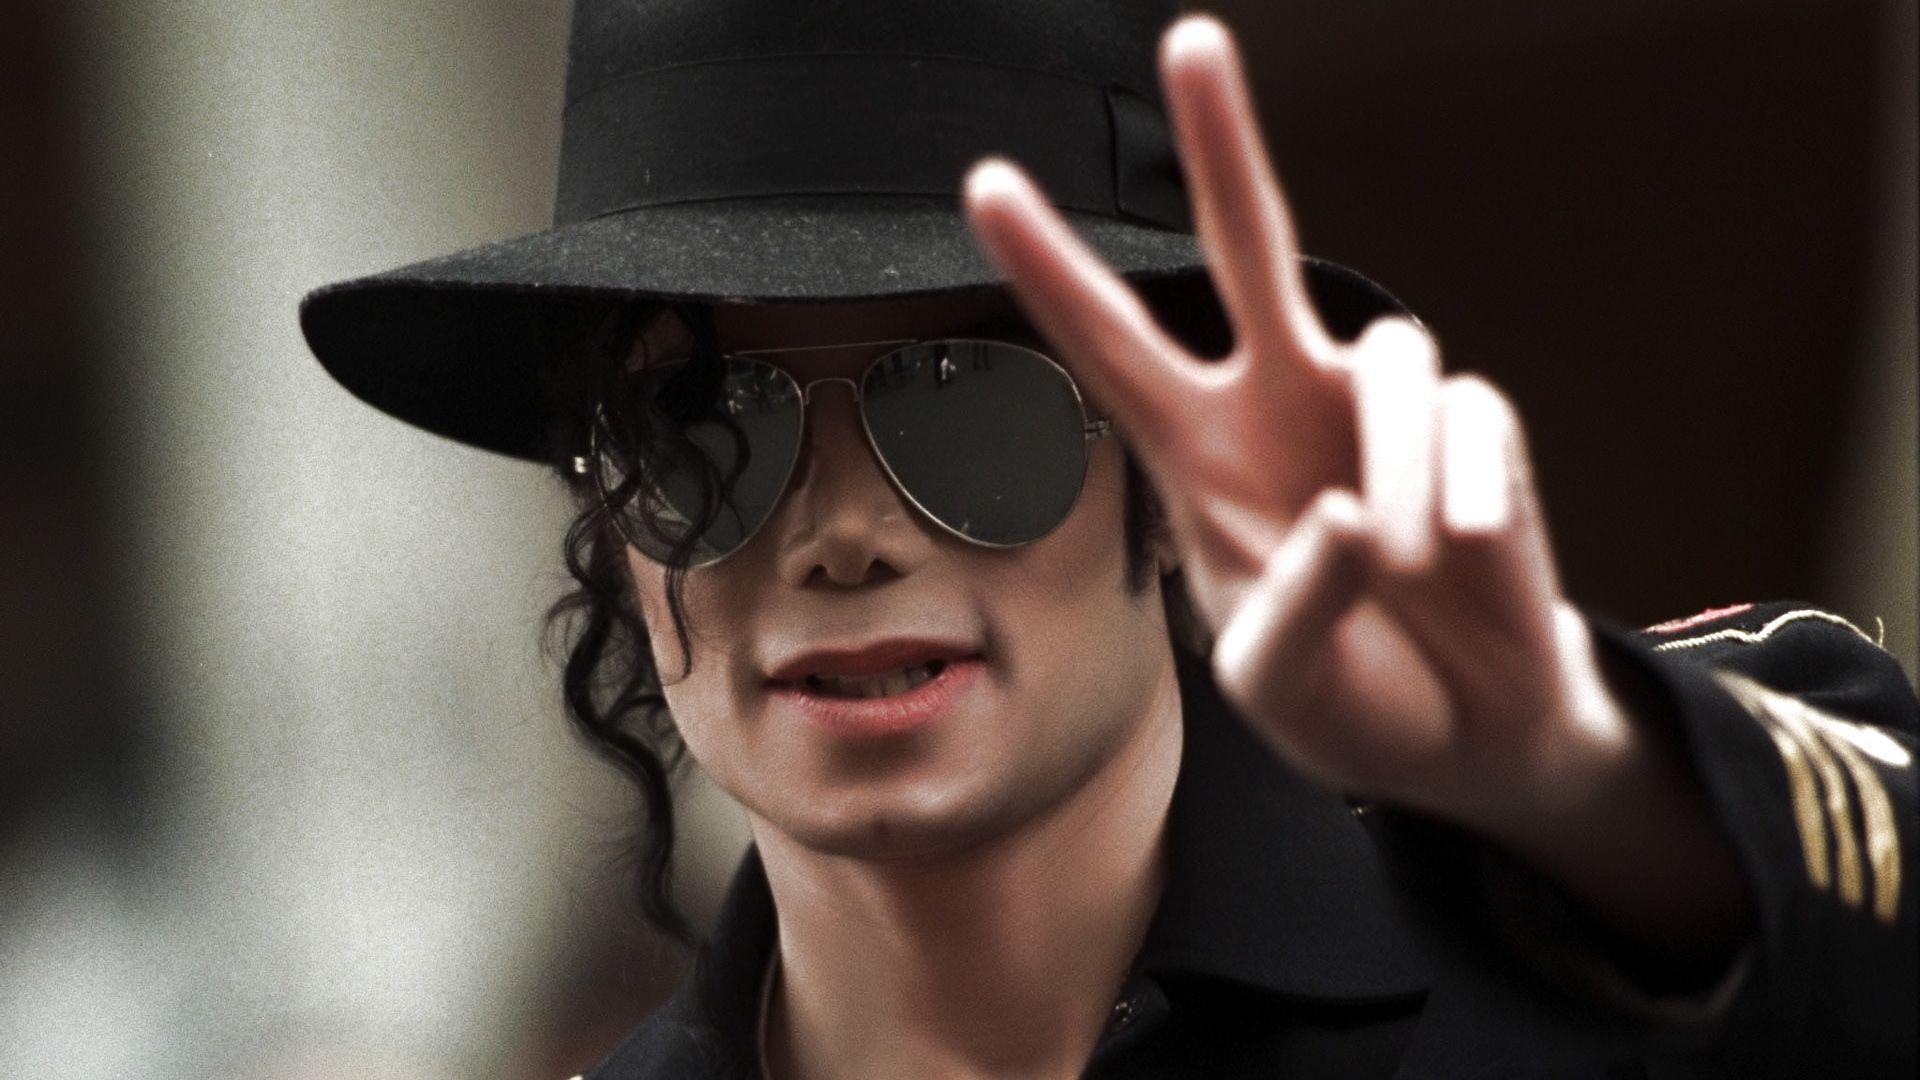 Michael Jackson Hd Wallpaper Free Download | Free Download ...